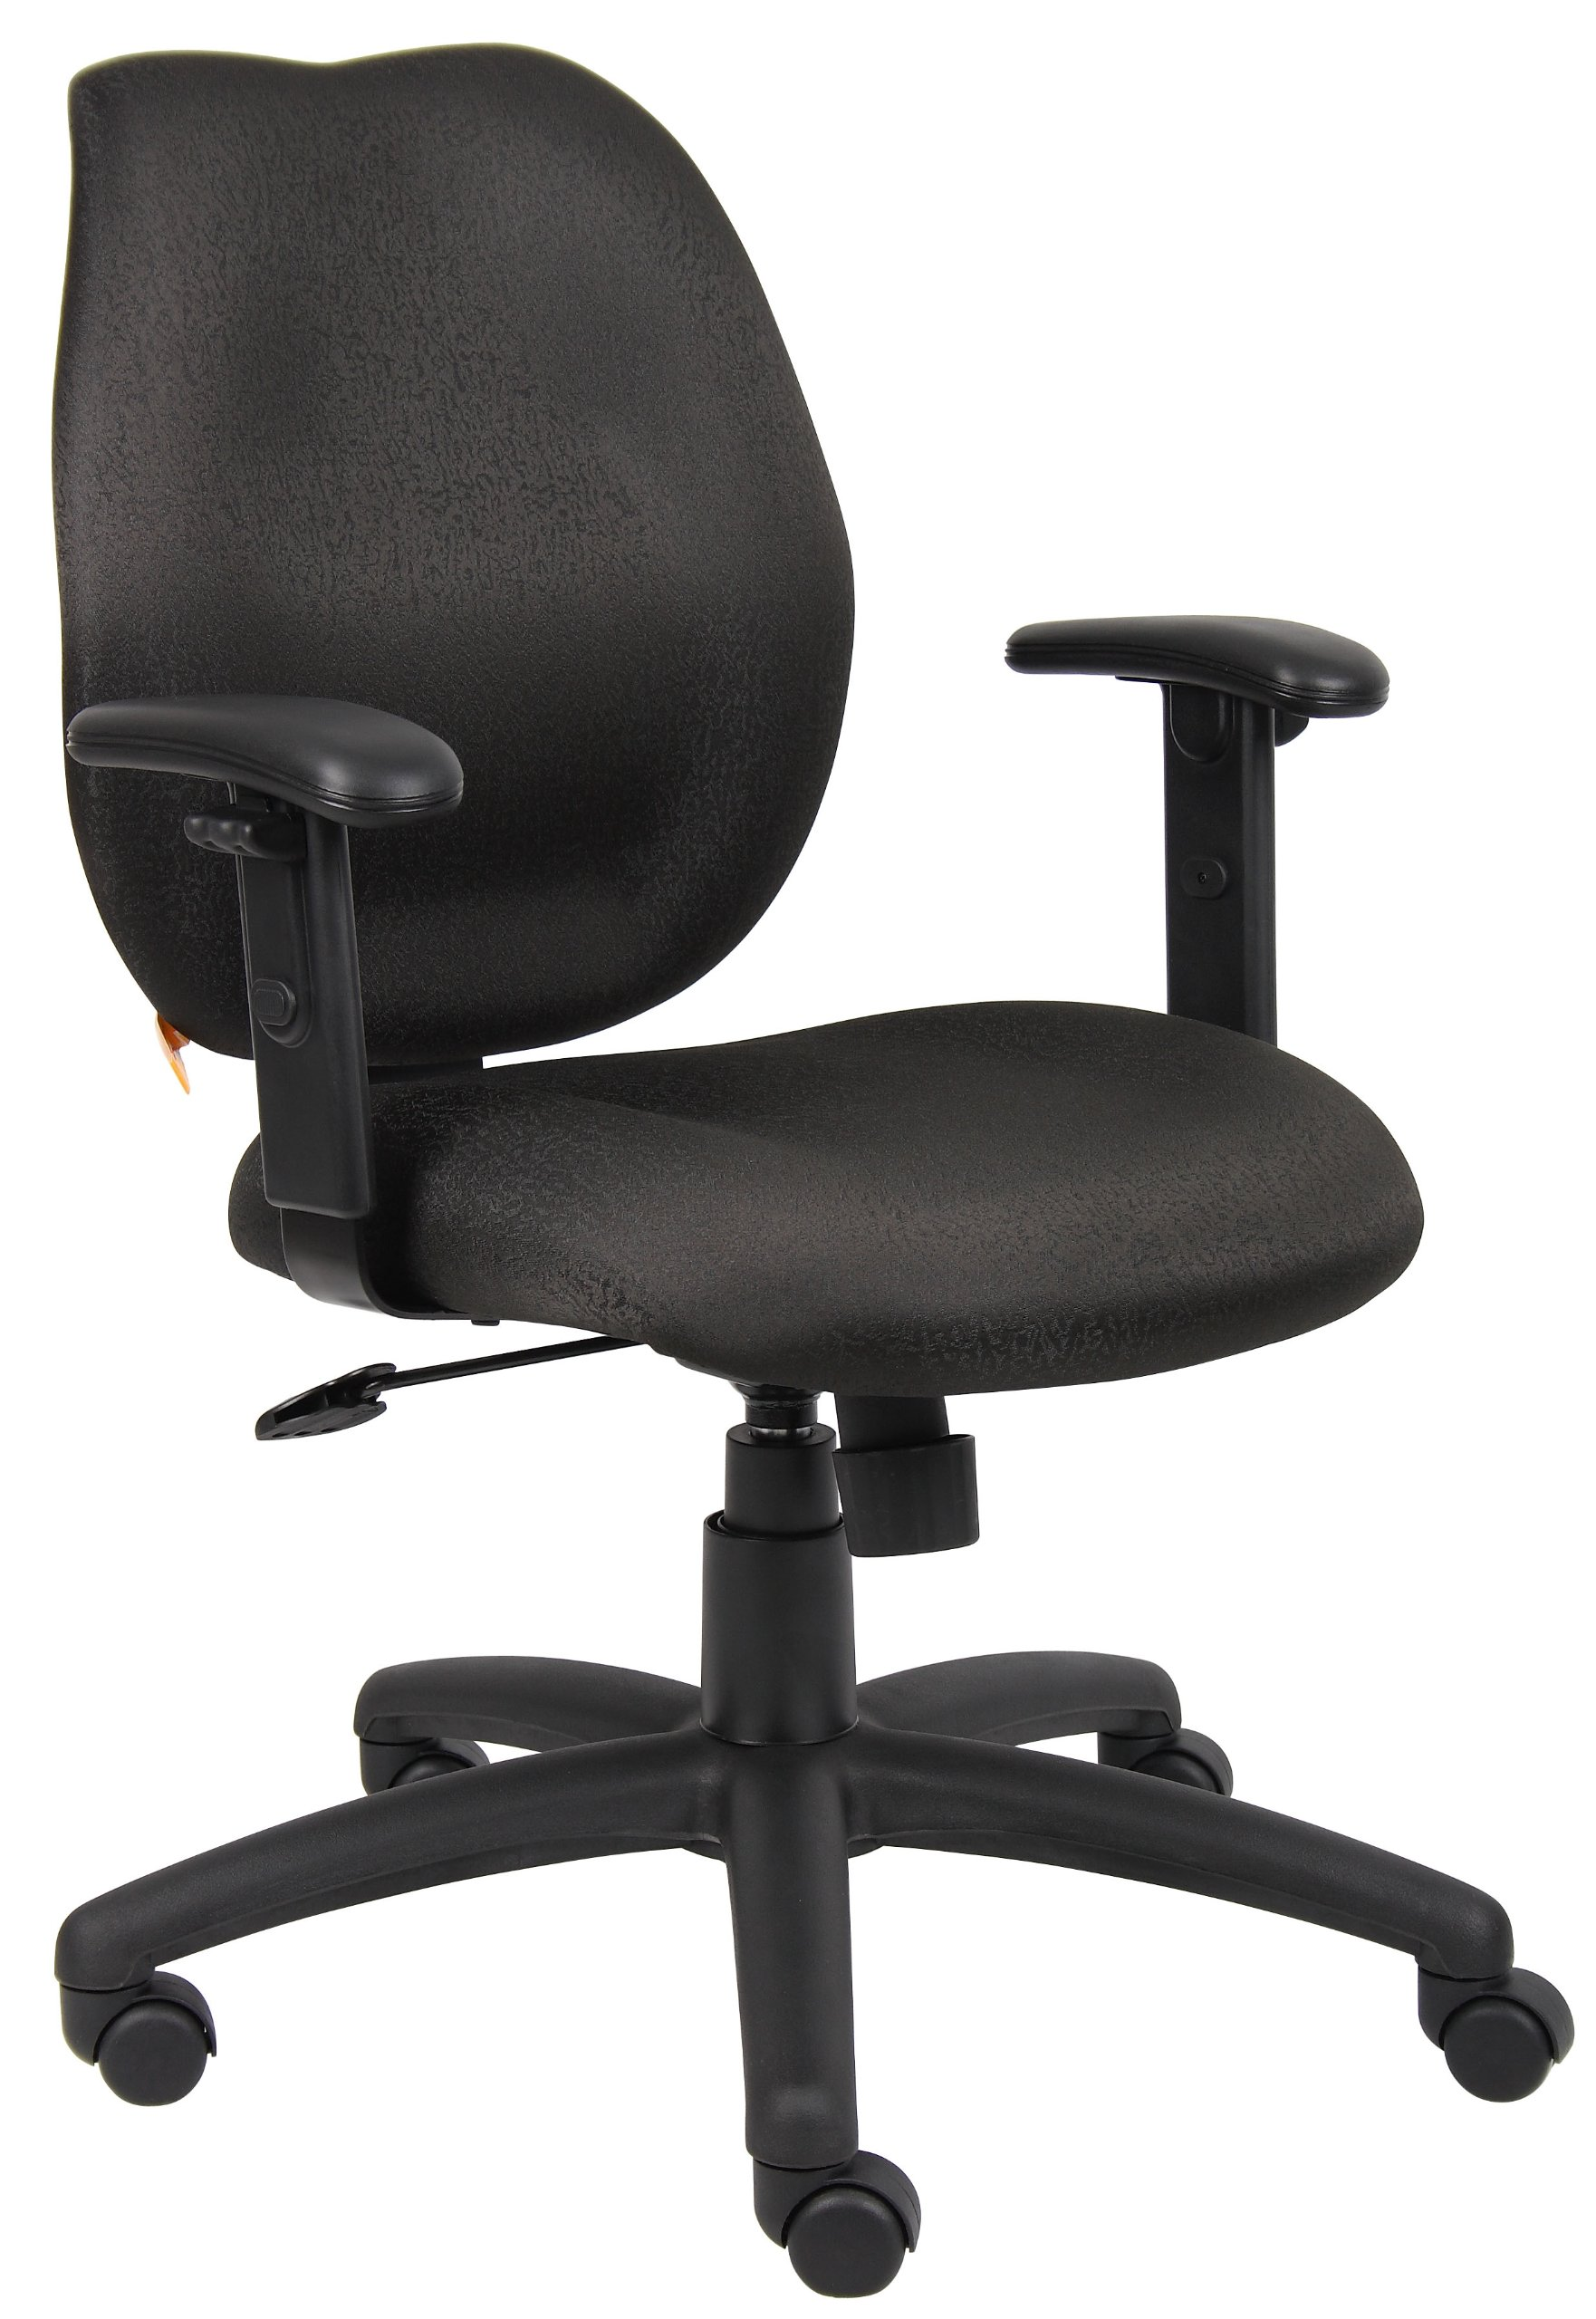 Boss Office Products B1014-BK Any Task Mid-Back Task Chair with Adjustable Arms in Black